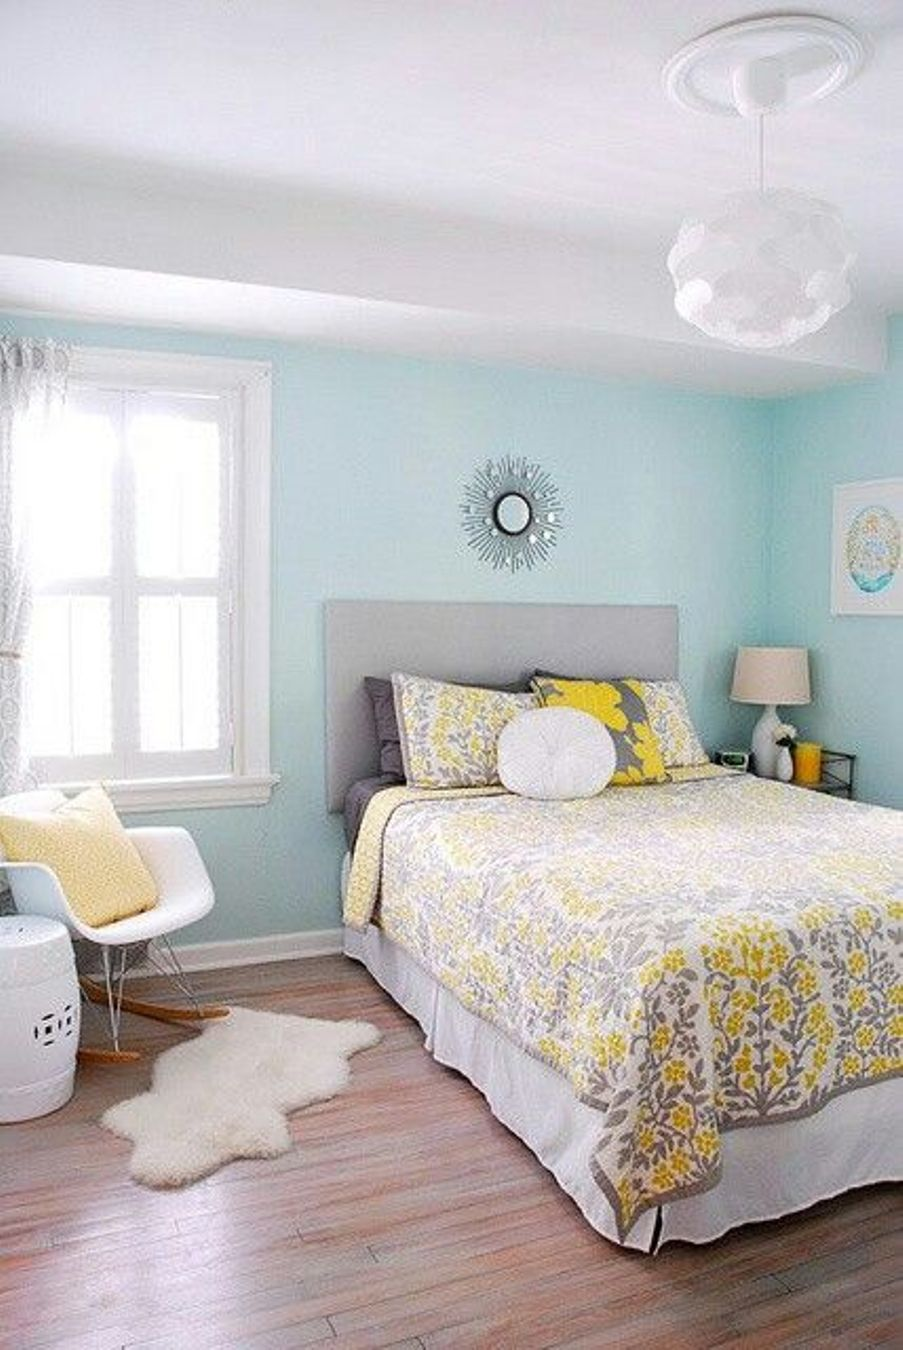 Best Paint Colors for Small Room - Some Tips - HomesFeed on Good Bedroom Ideas For Small Rooms  id=57225